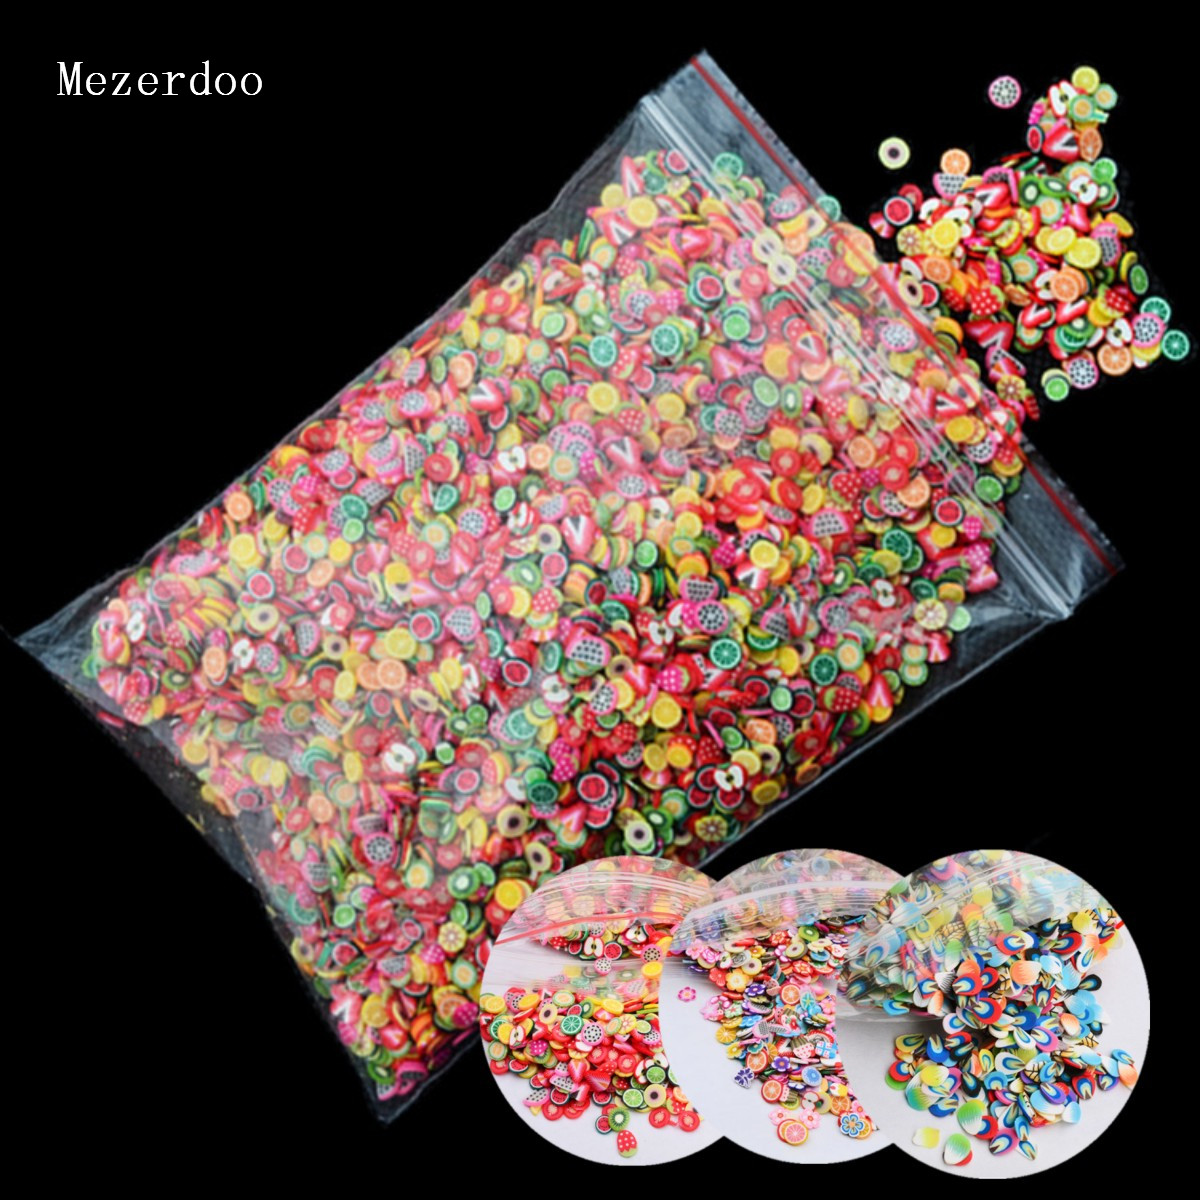 10000pcs/pack 3D Nail Art Fruit Fimo Slices Polymer Clay DIY Slice Decoration Smile Feather Nail Sticker Nail Jewelry Wholesale new 1pack 50pcs fimo nail stickers fimo canes fruit 3d nail art decoration polymer clay animal flower fimo rods nail diy design